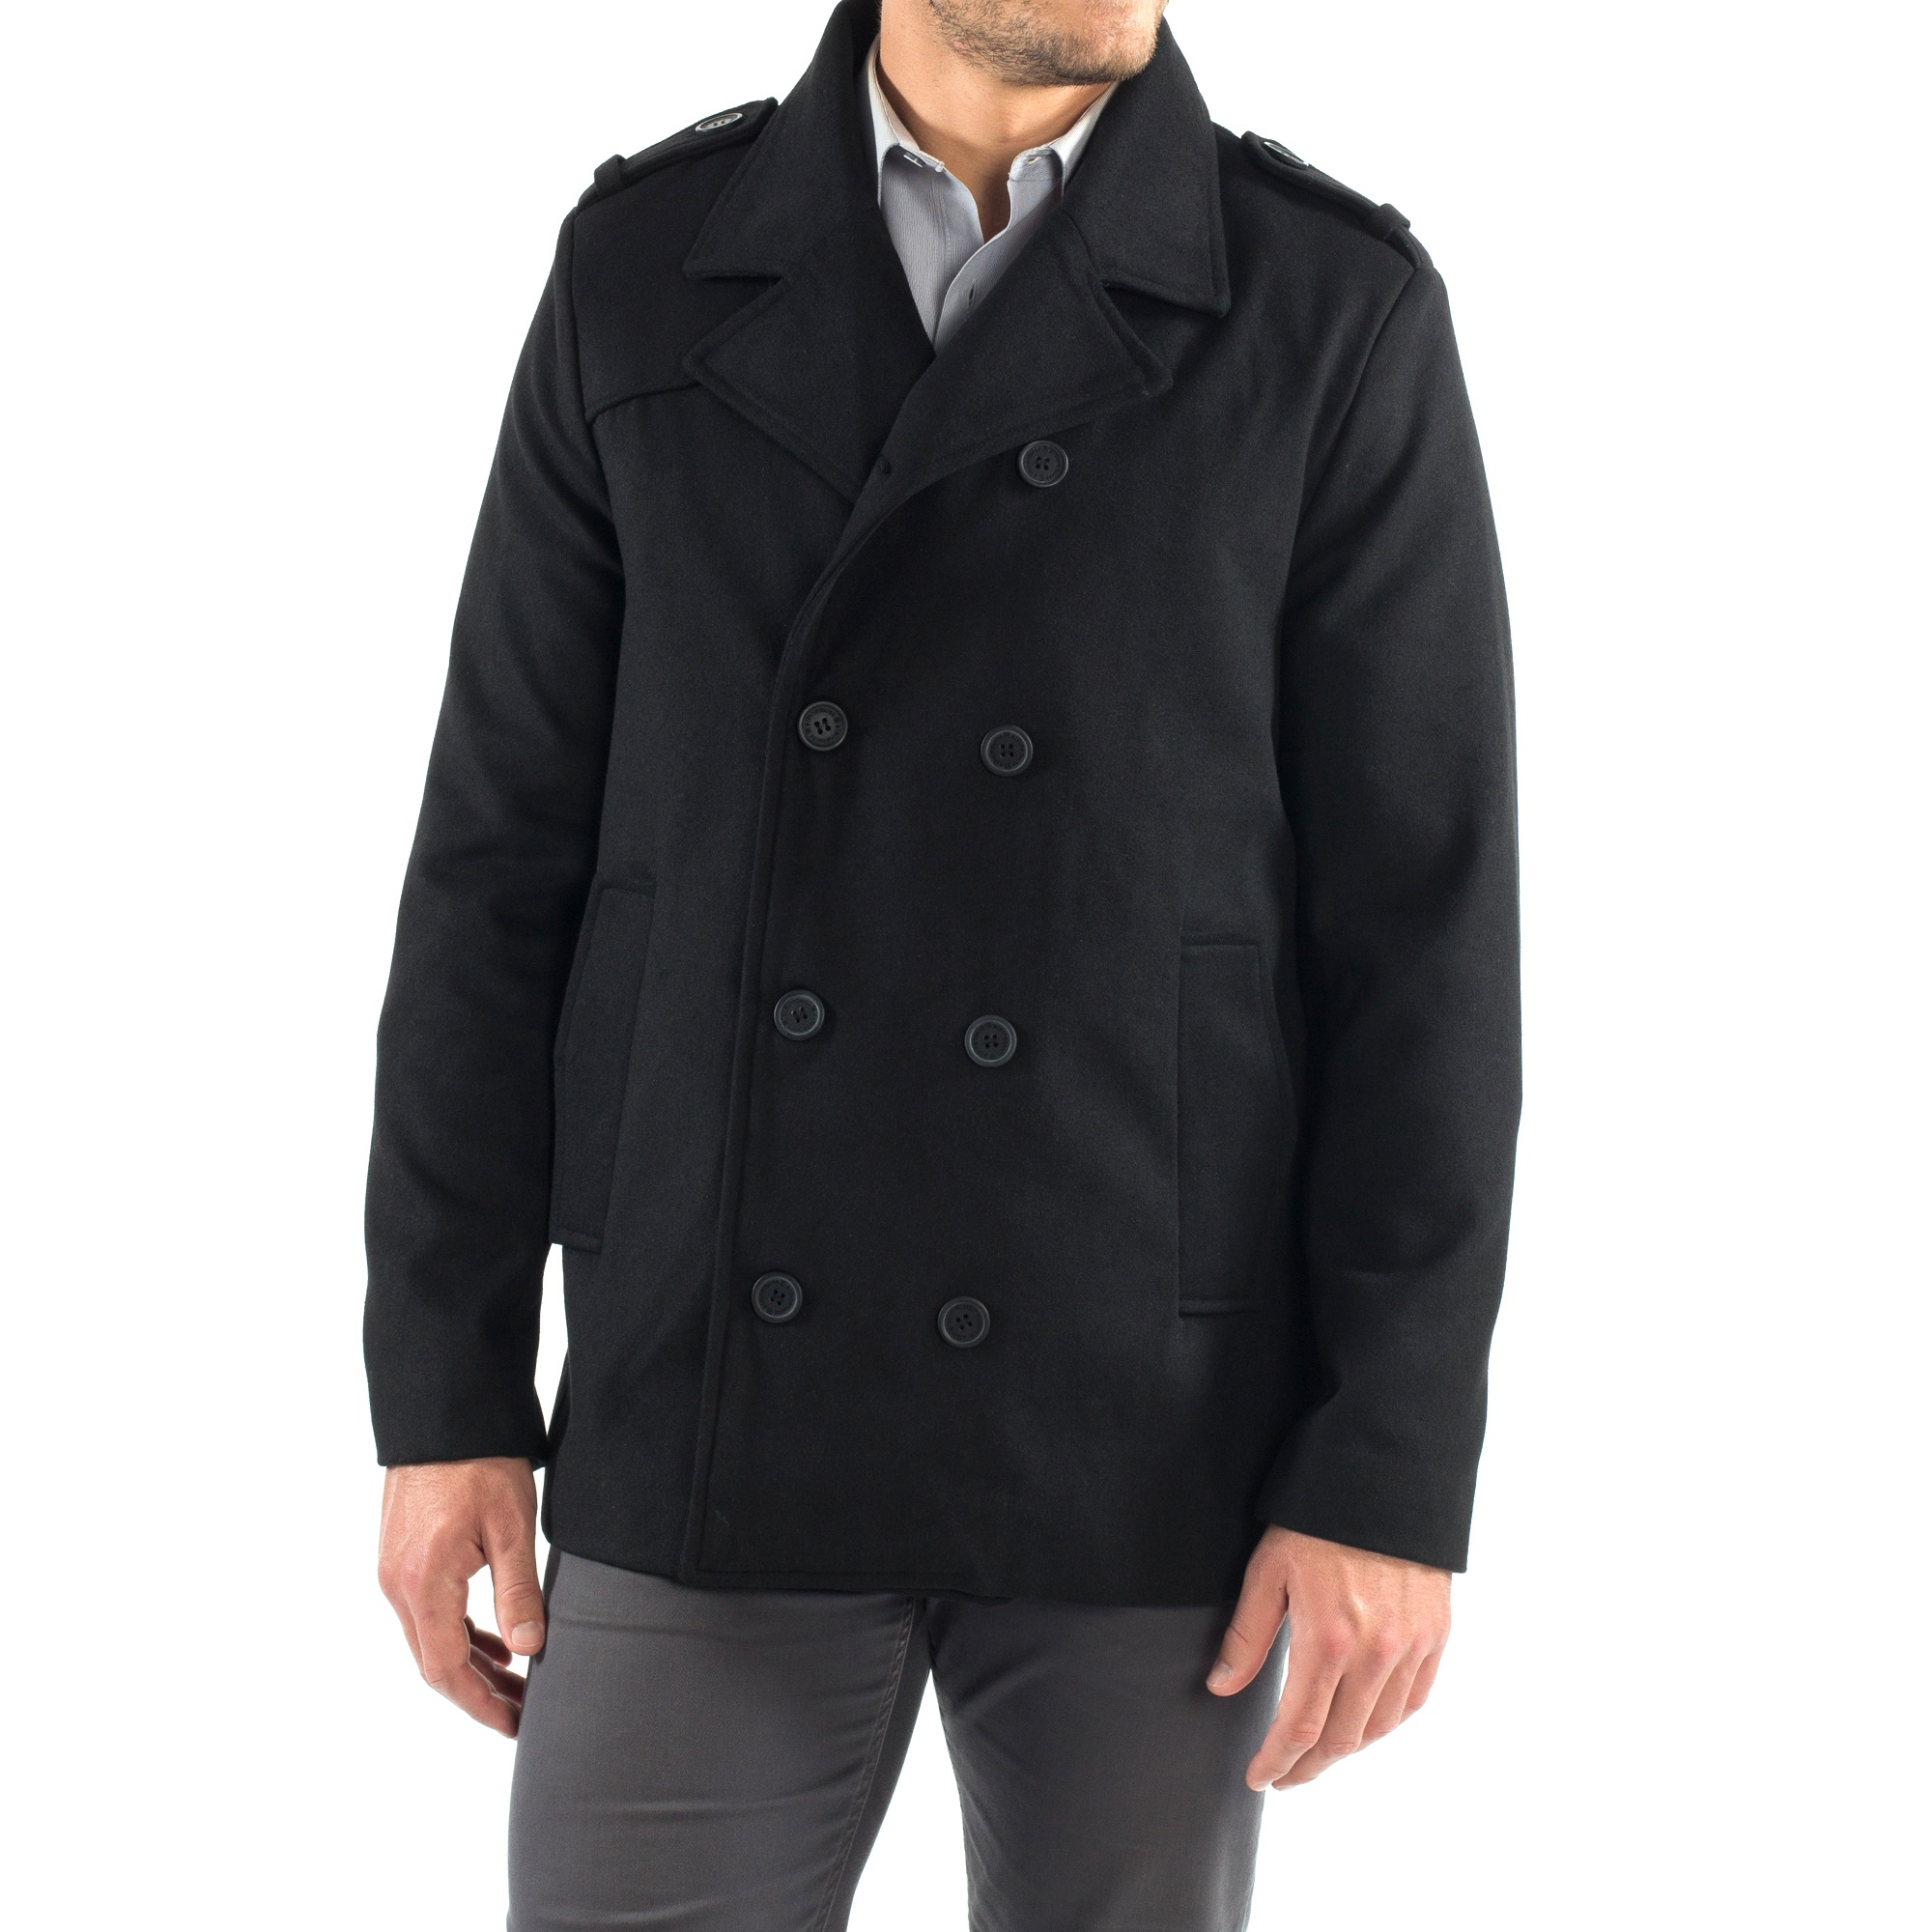 c0b1e94f3 Alpine Swiss Jake Mens Wool Pea Coat Double Breasted Jacket